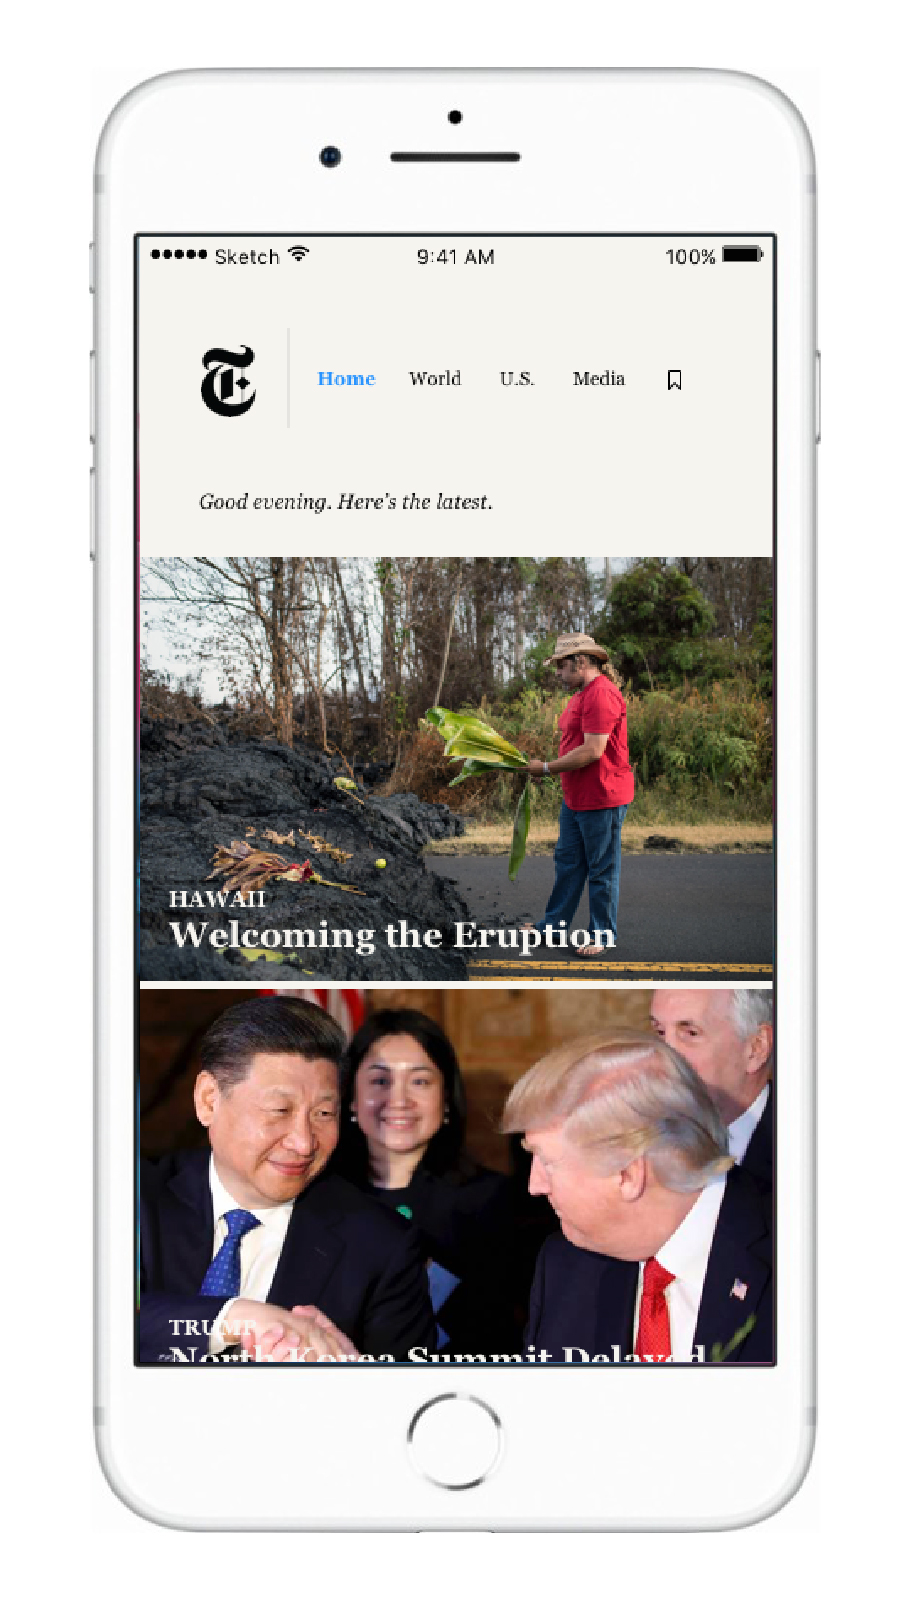 Home features 10 different articles per day based on breaking news and what is most popular.